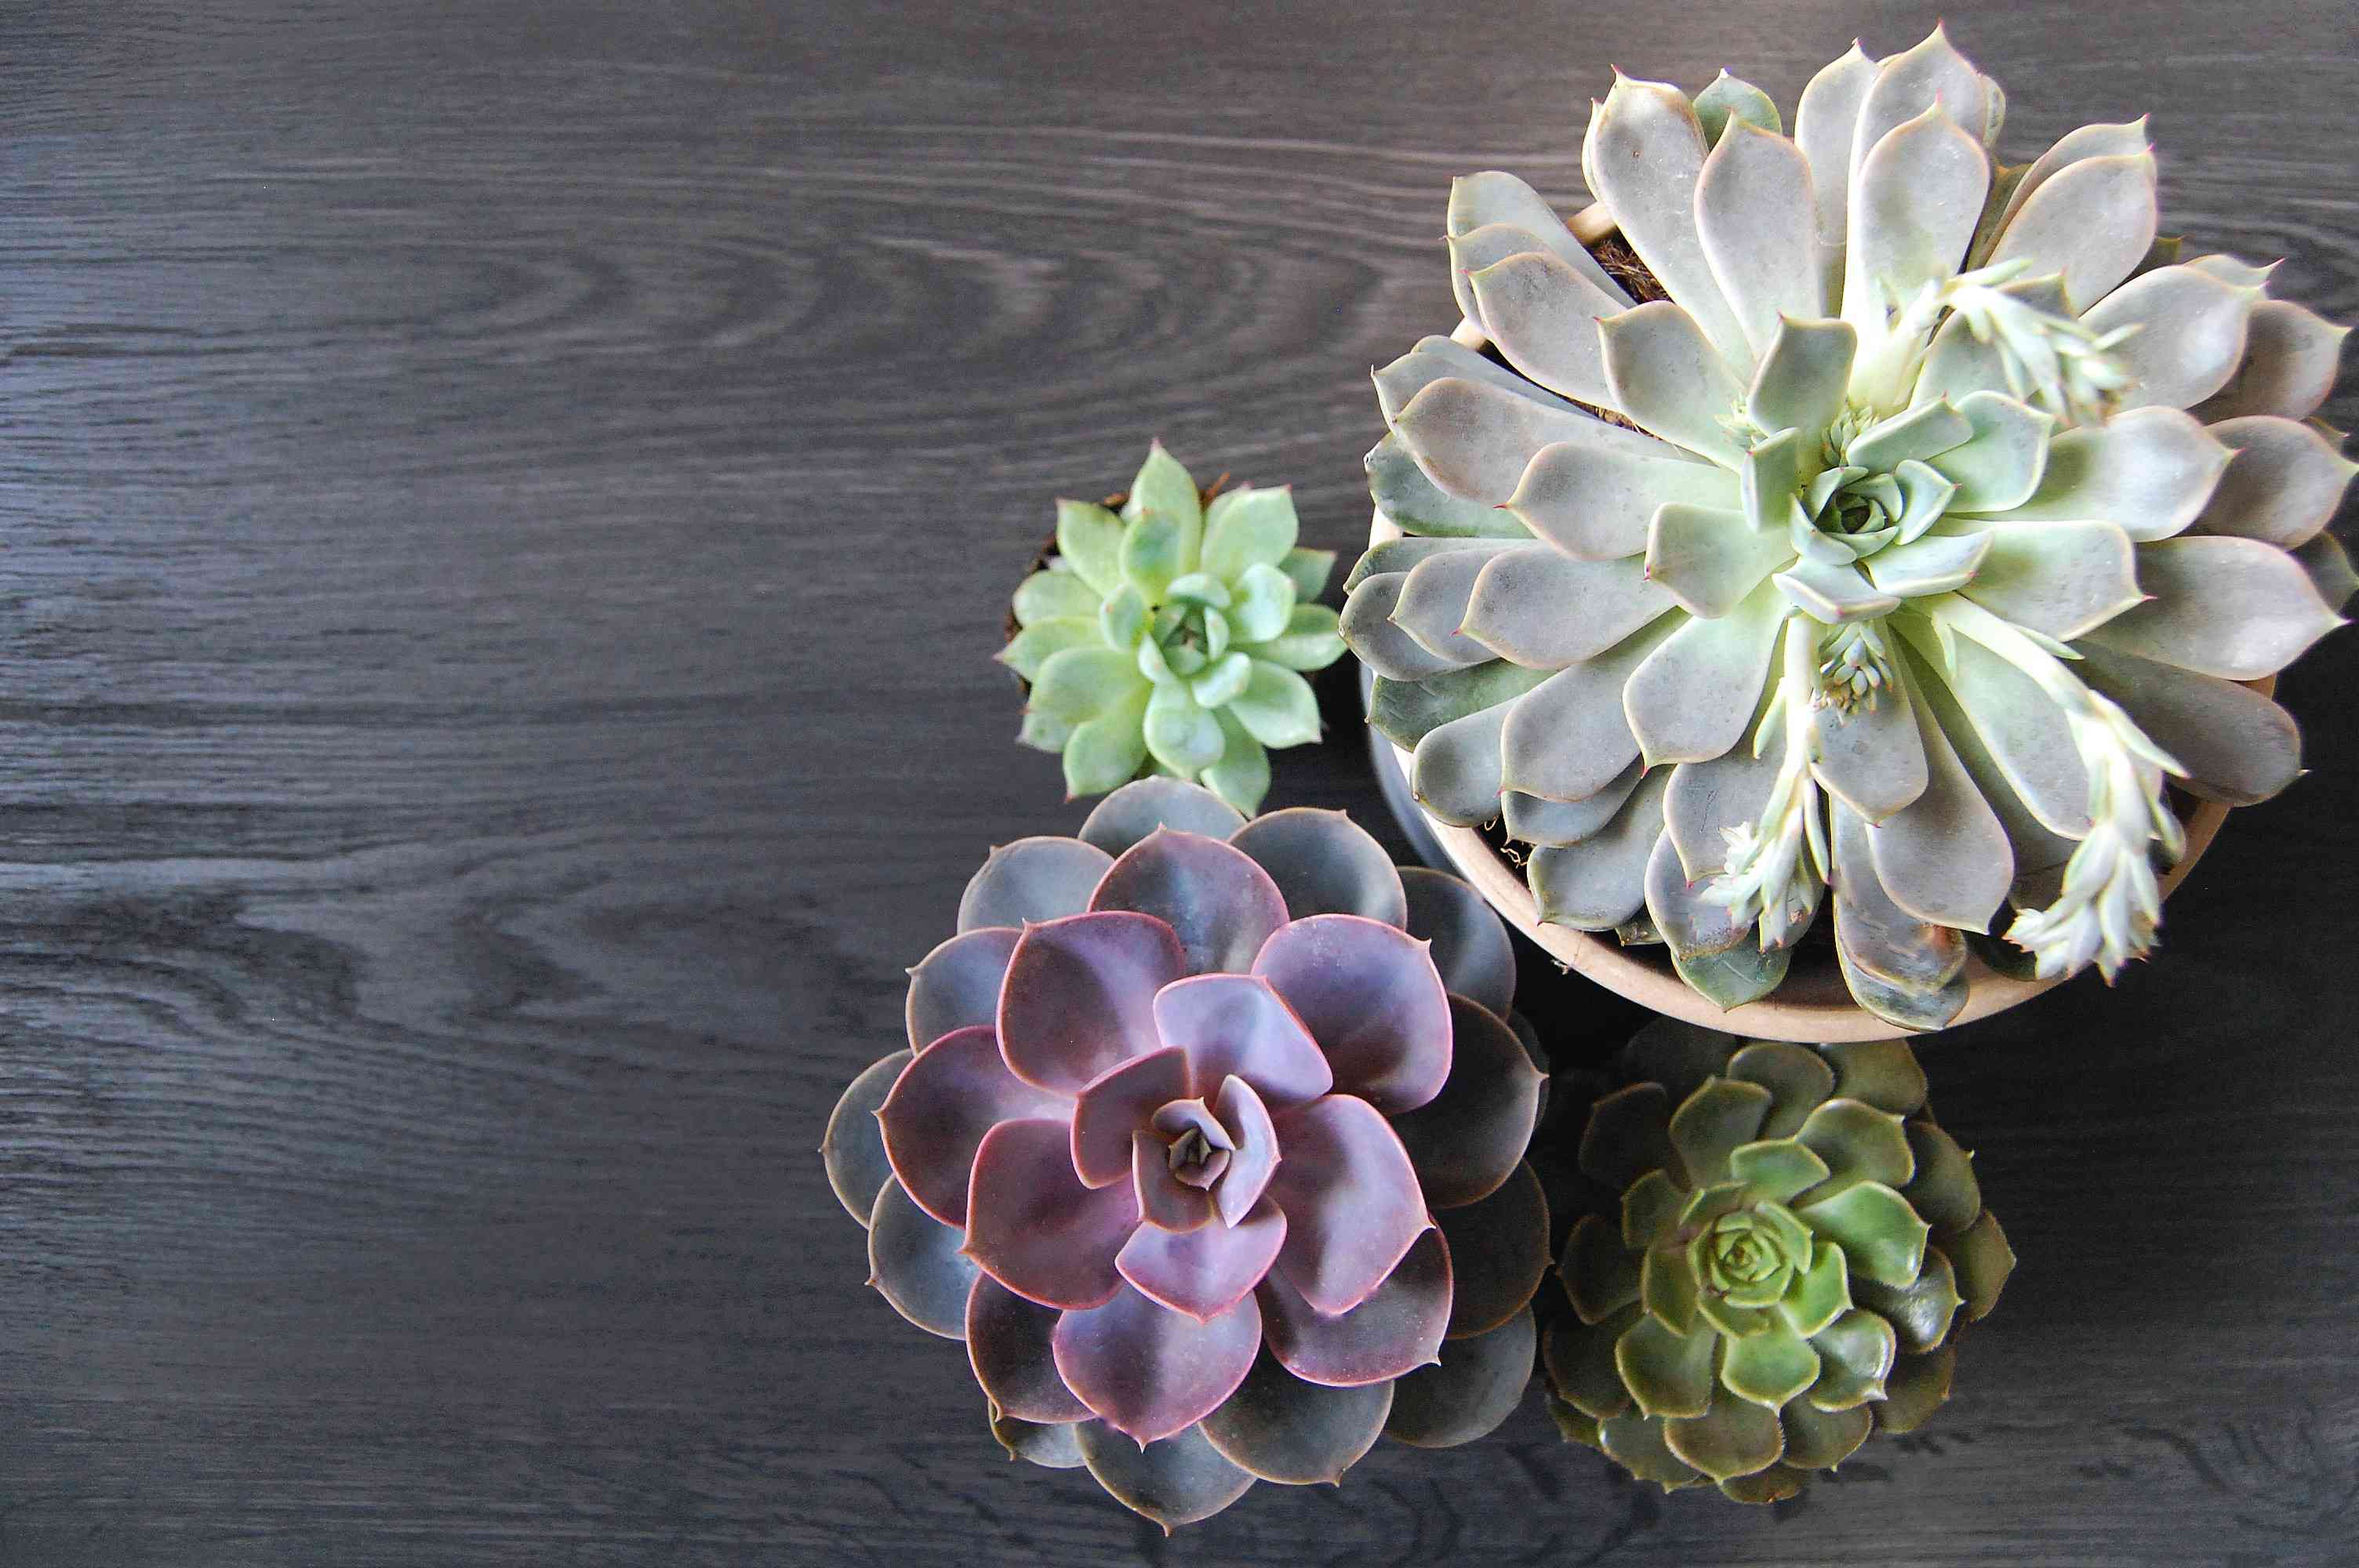 Four Echeveria succulents from an overhead view.